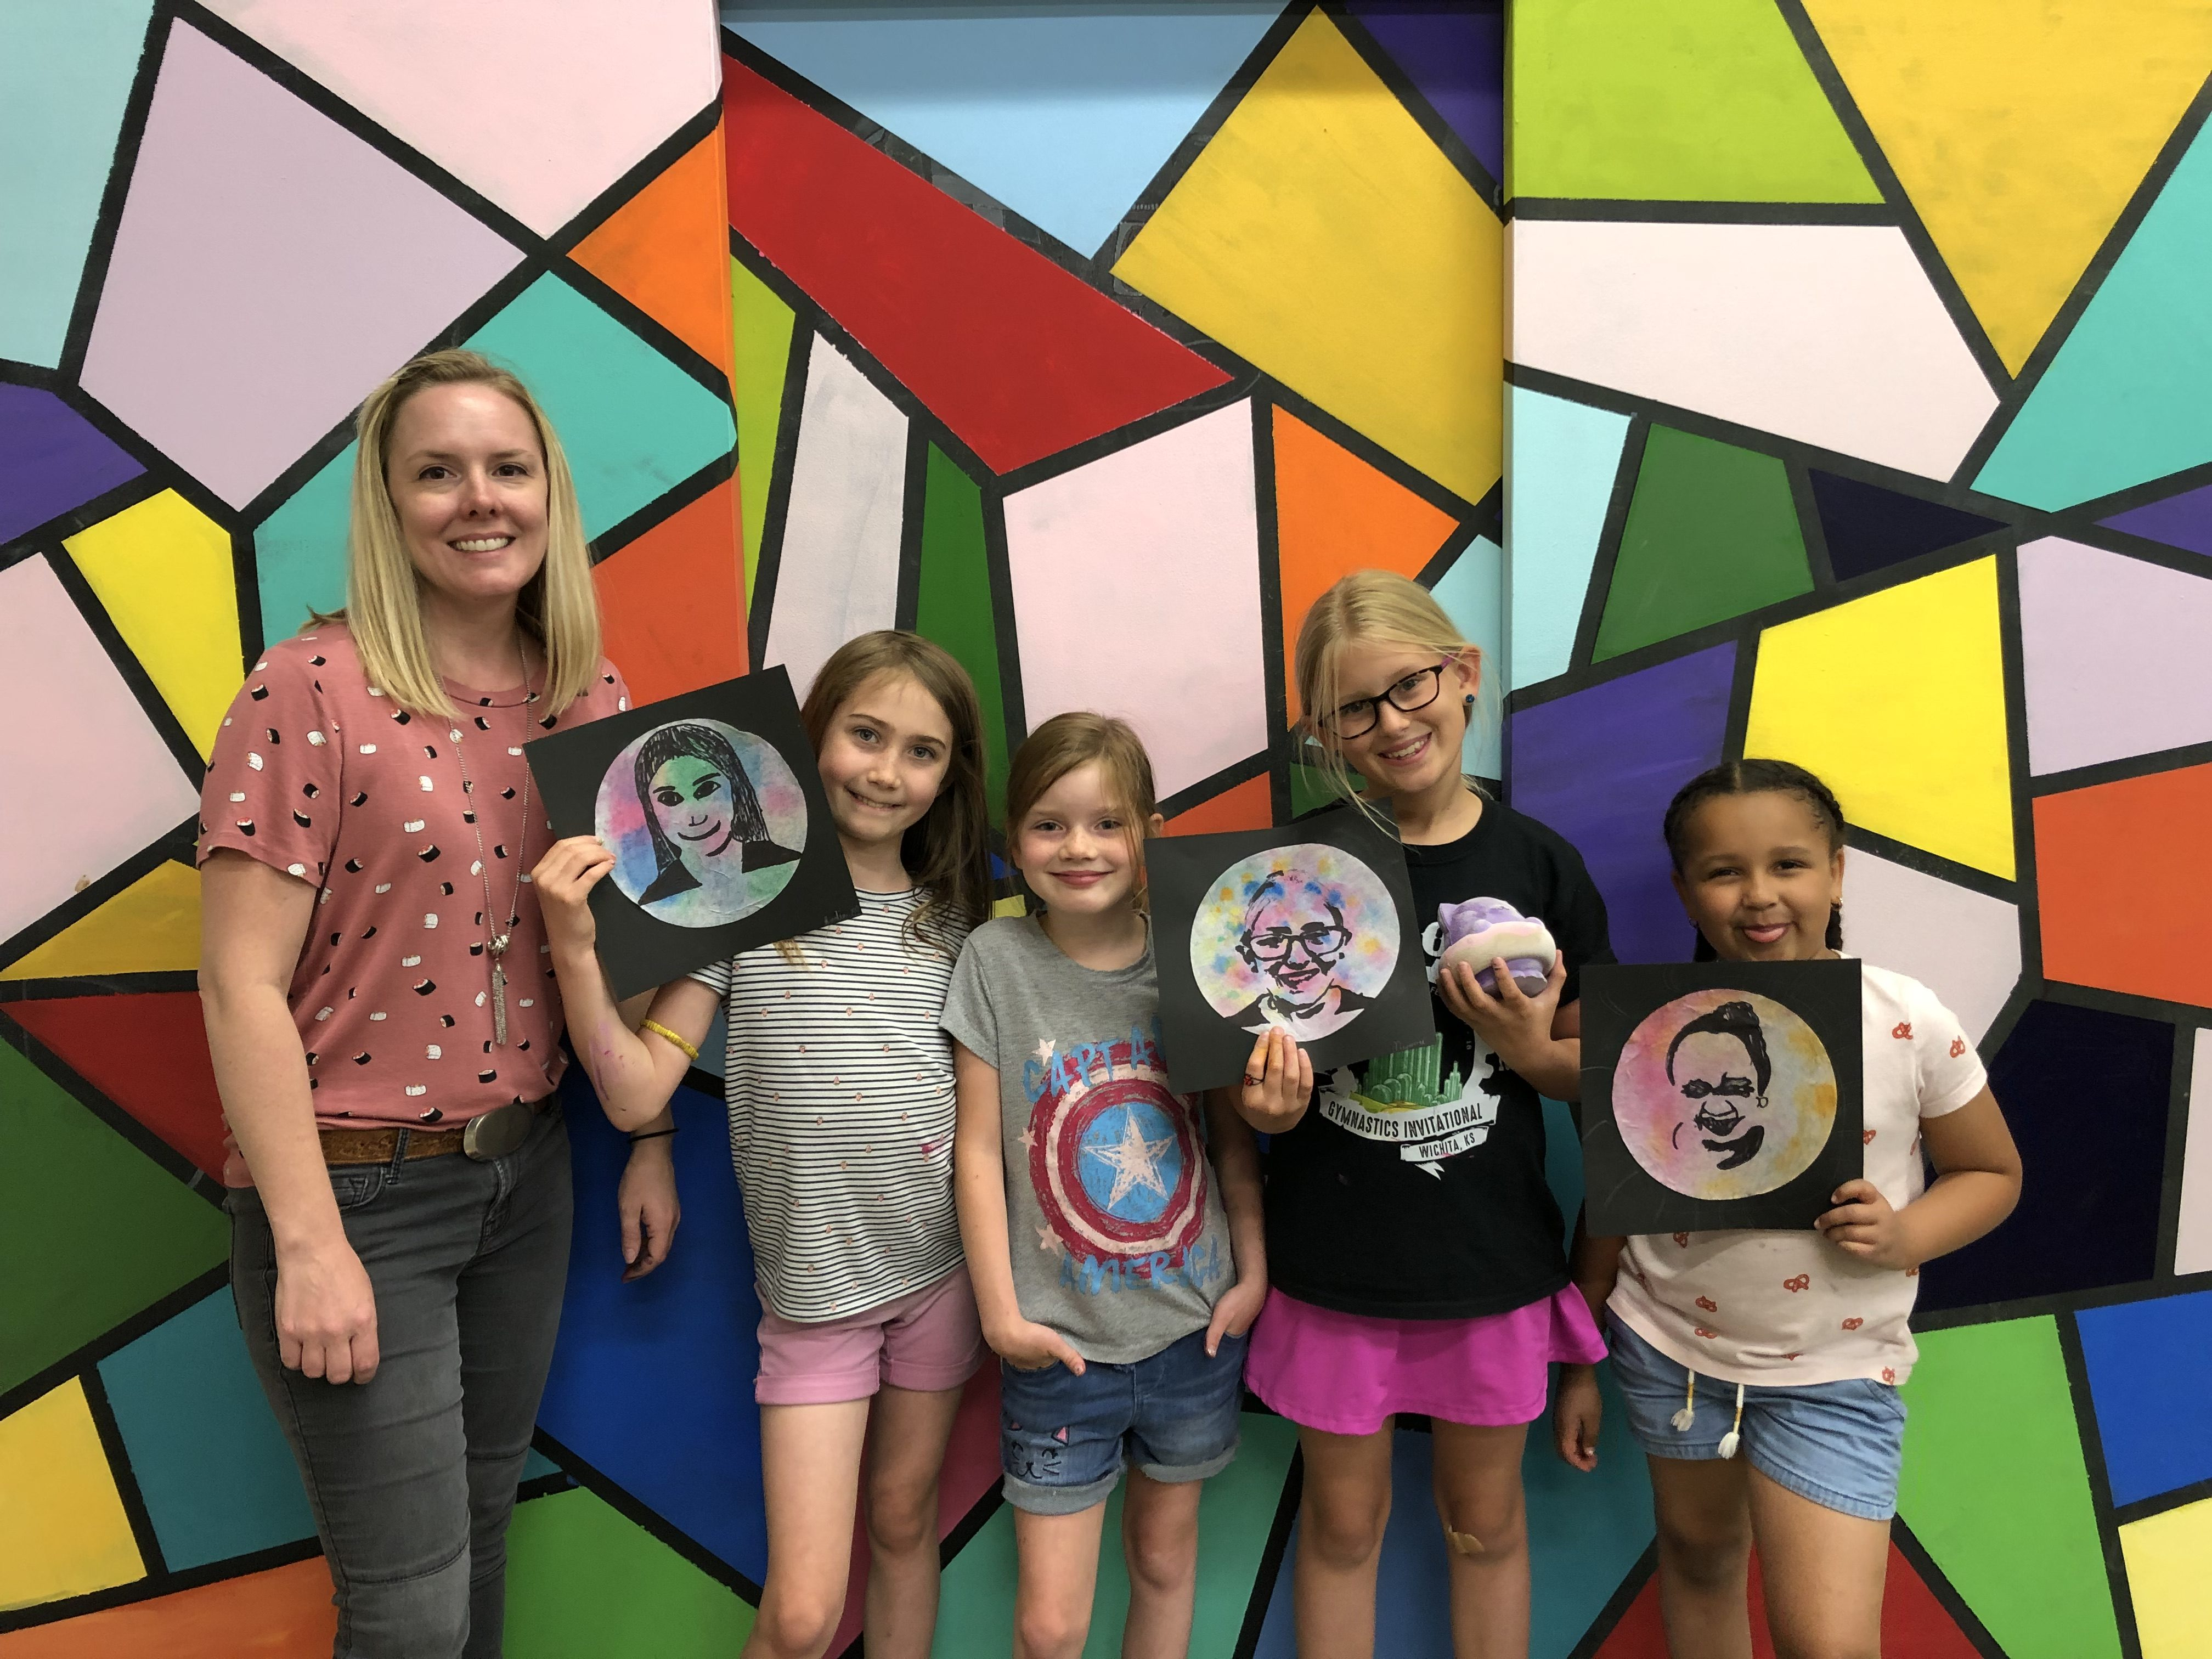 CityArts Summer Camp